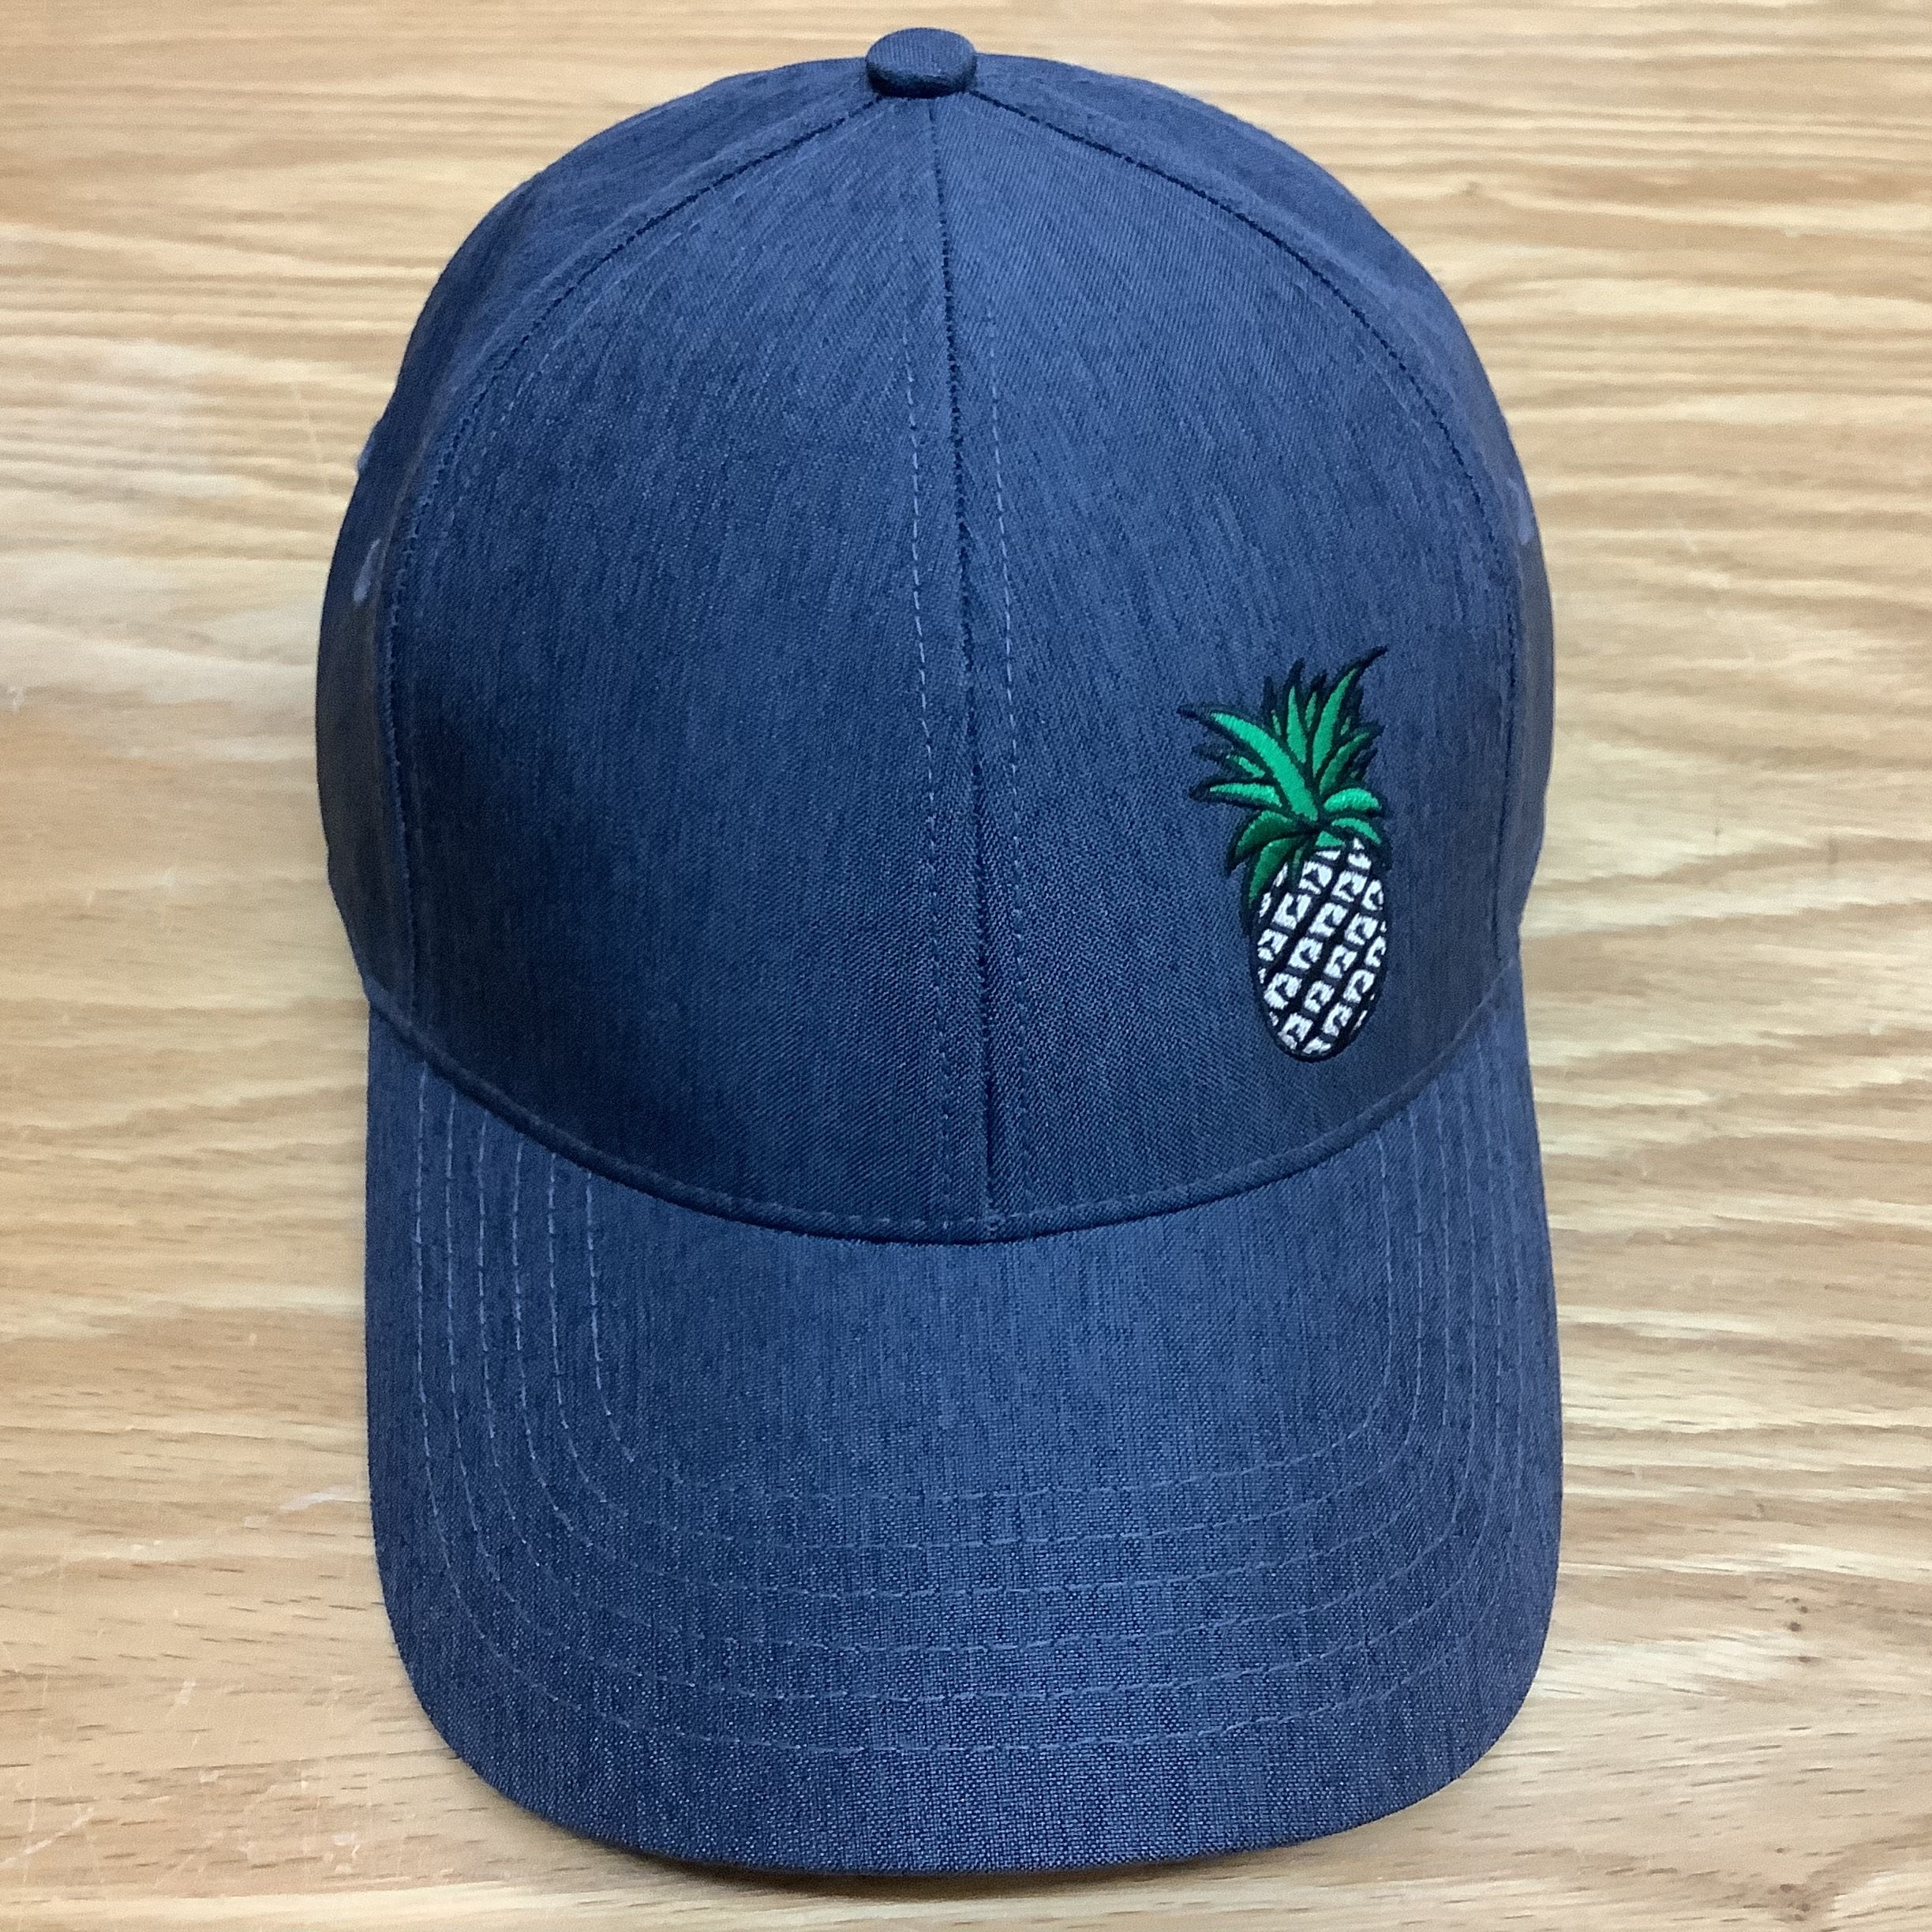 Small Pineapple Hat - Red Dirt Maui